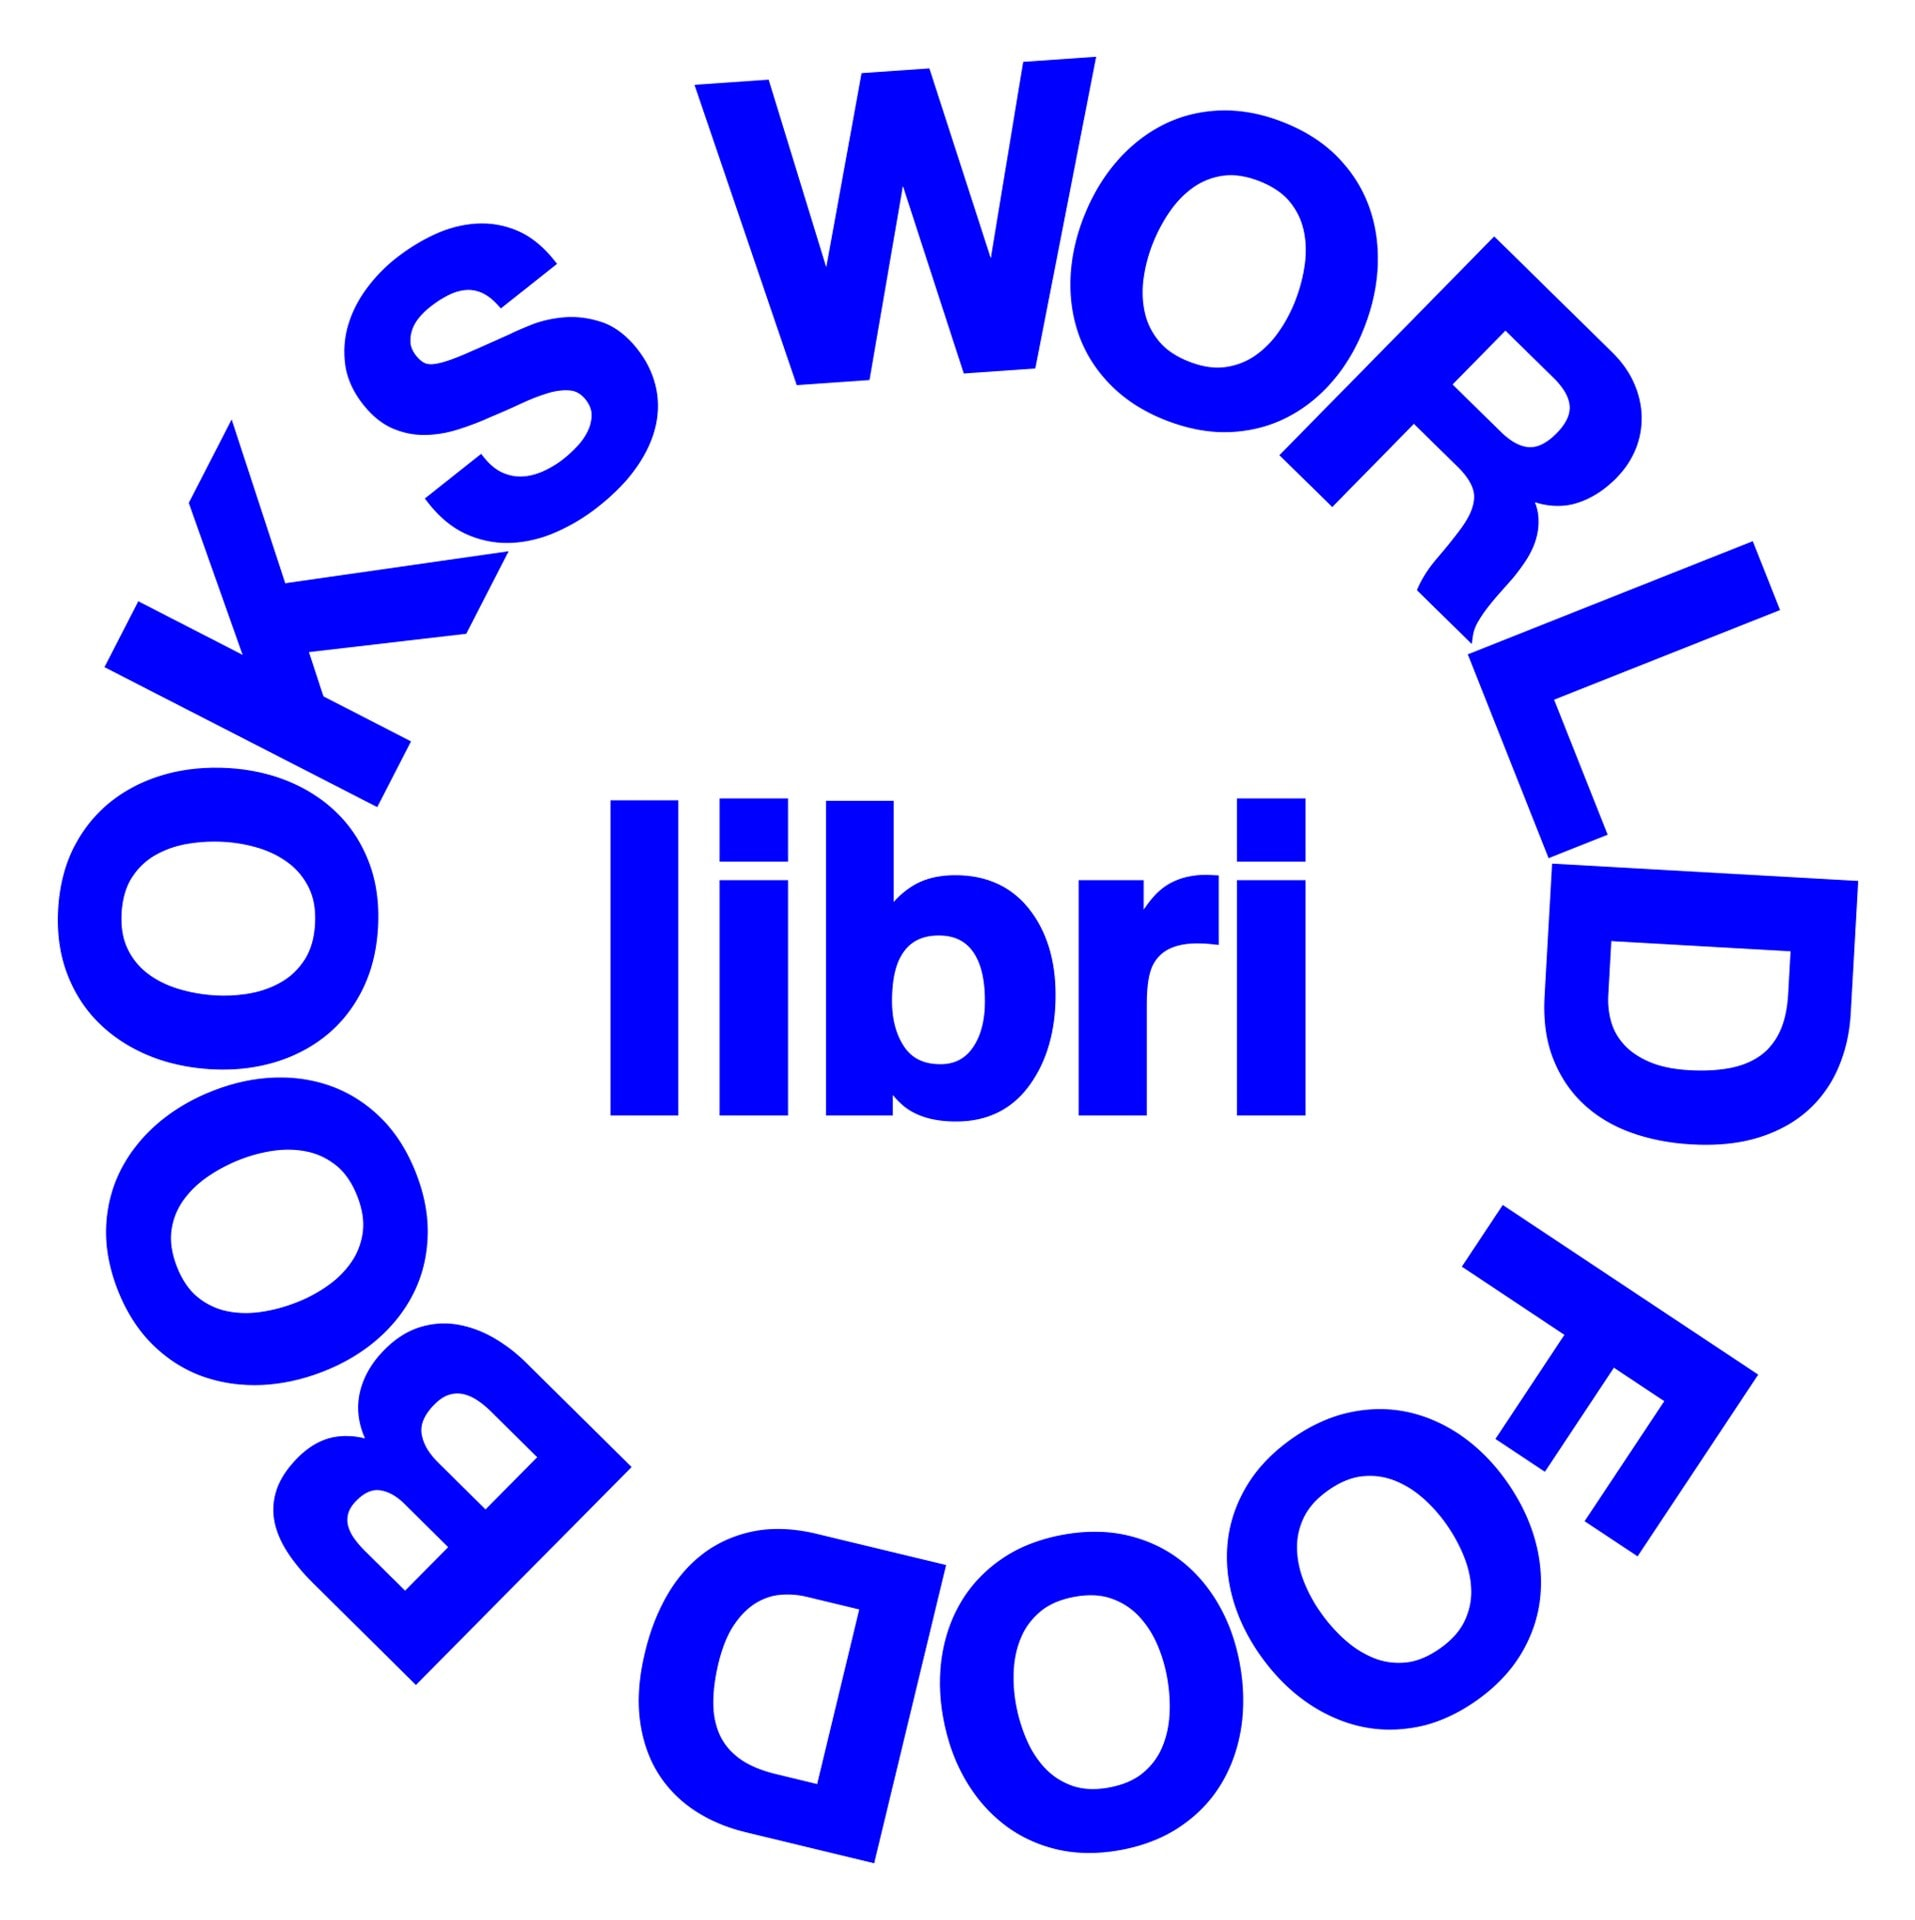 World Food Books logo, image courtesy of World Food Books